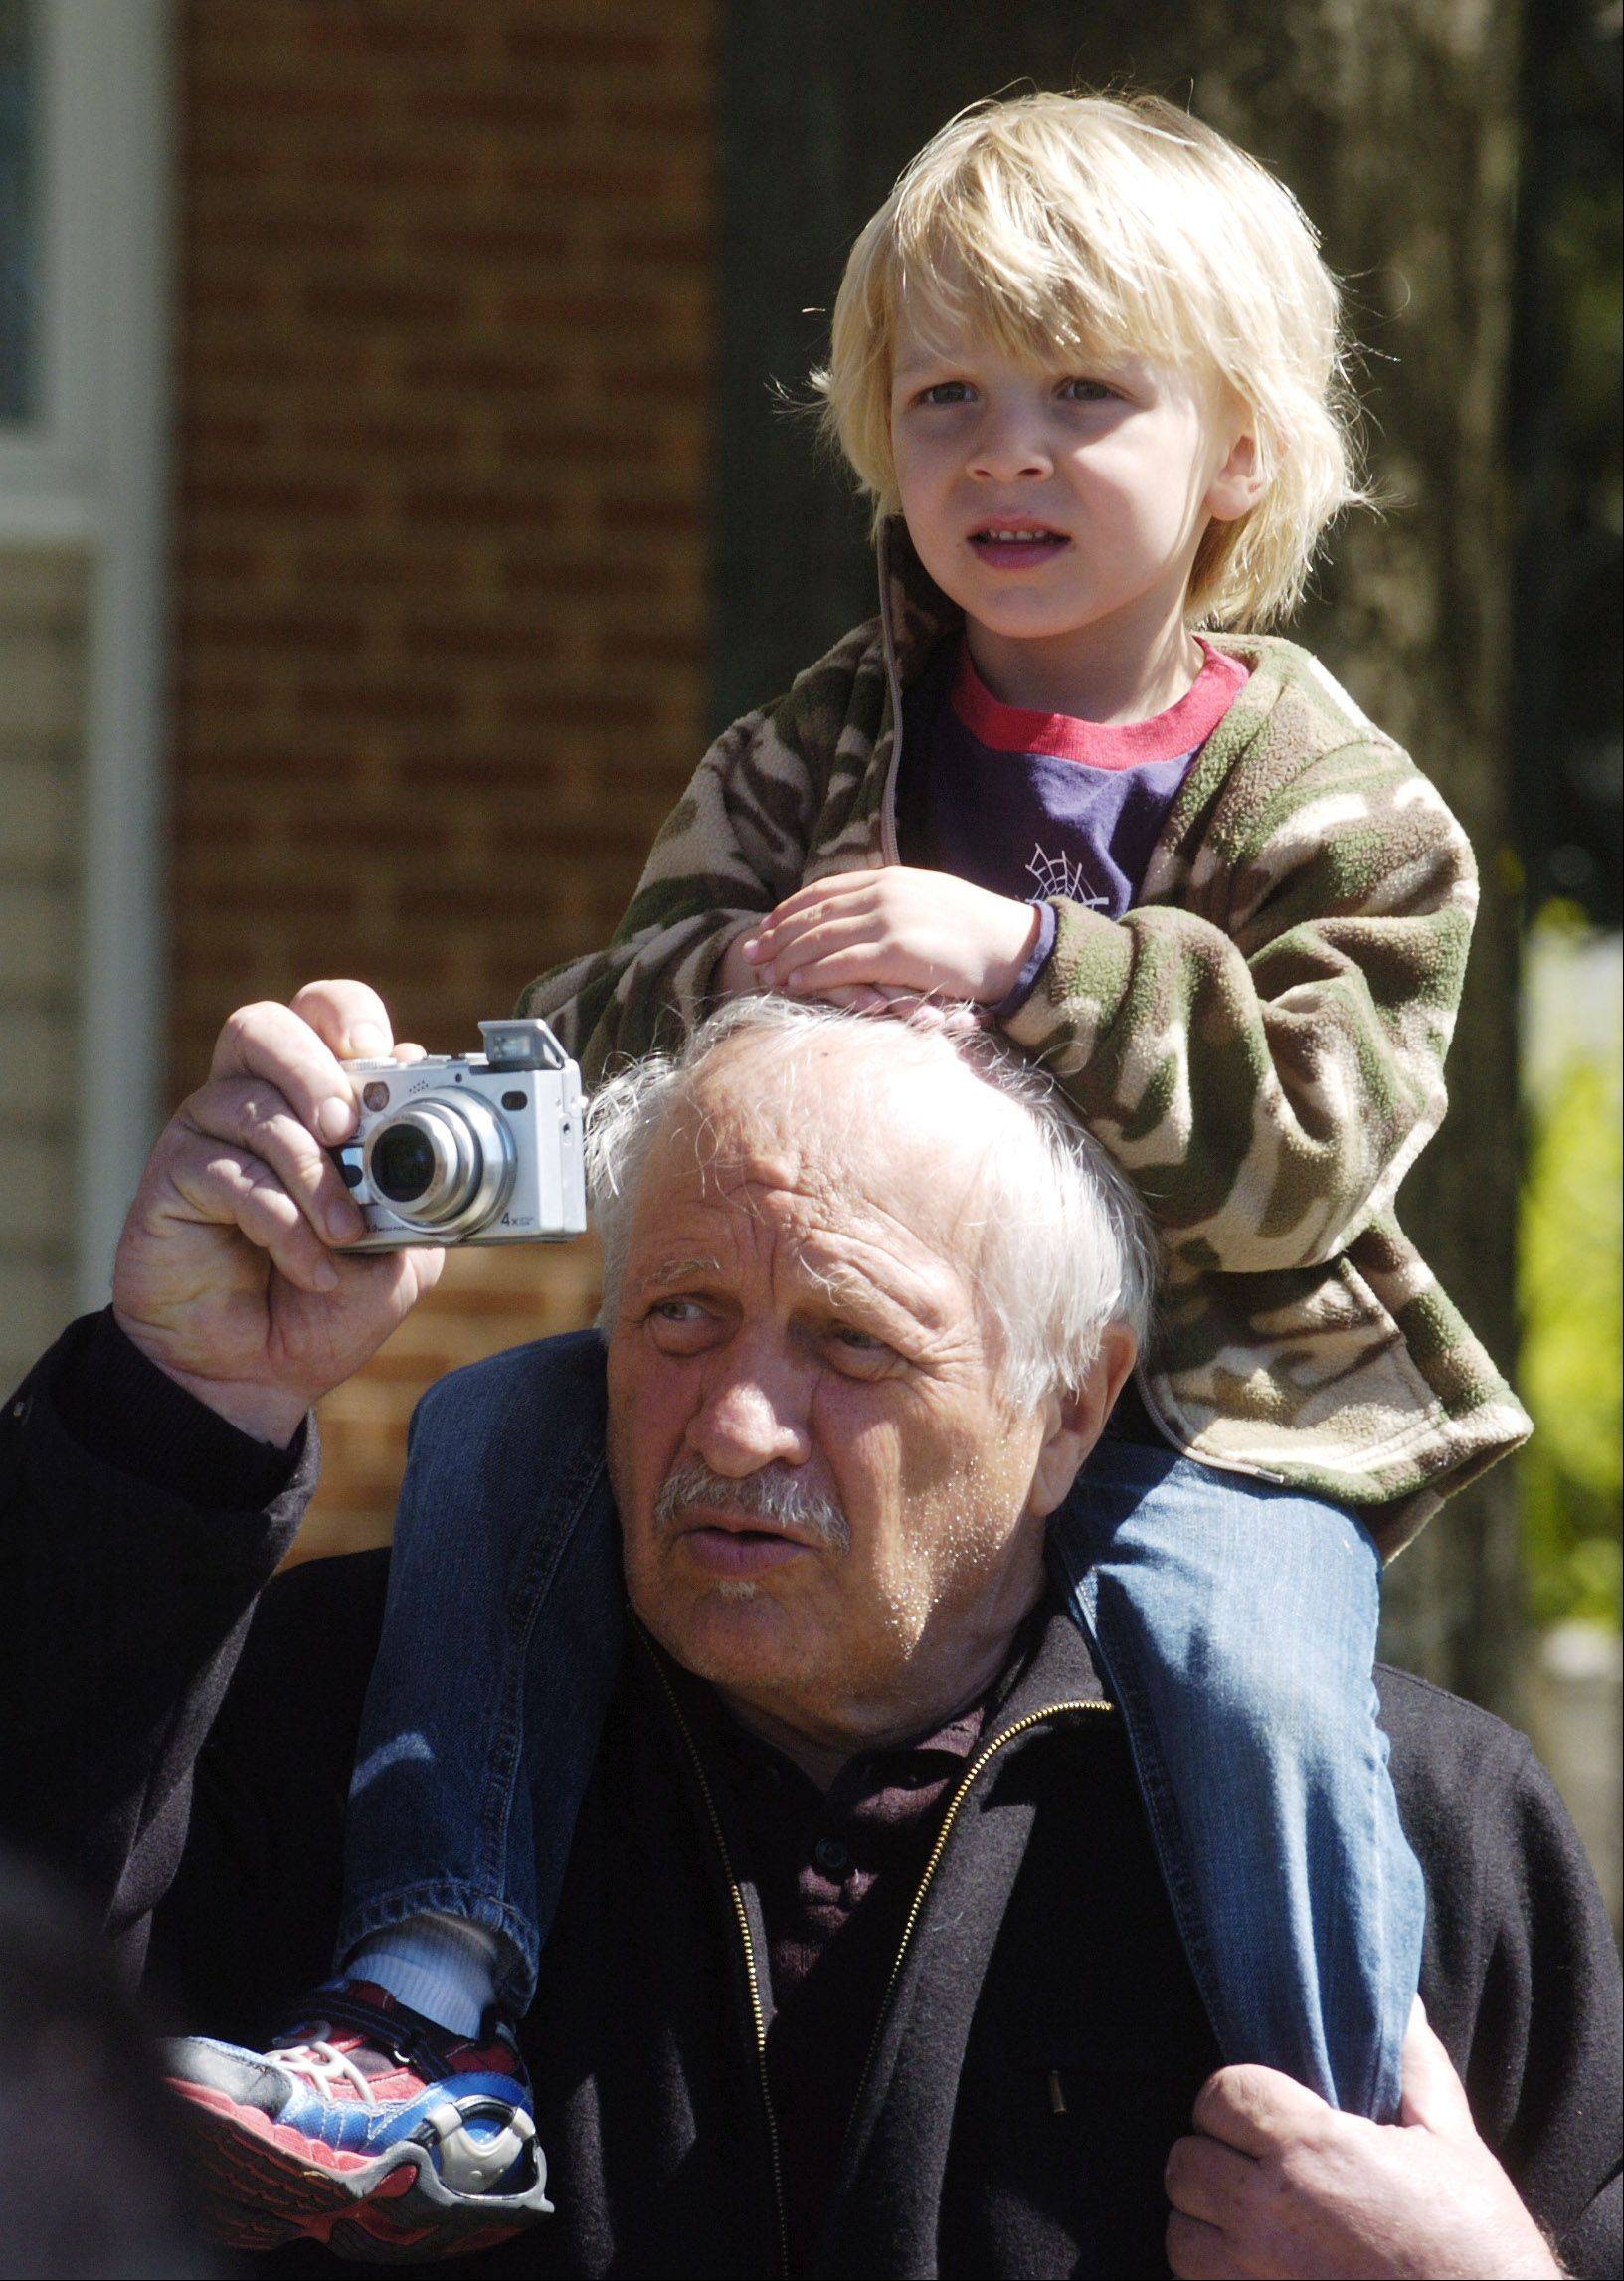 With his grandson, Stefan Smolak, 4, of Palatine, resting on his shoulders, George Smolak of Arlington Heights takes a picture during the live Way of the Cross procession between St. Thomas of Villanova in Palatine and Mission San Juan Diego in Arlington Heights on Good Friday.